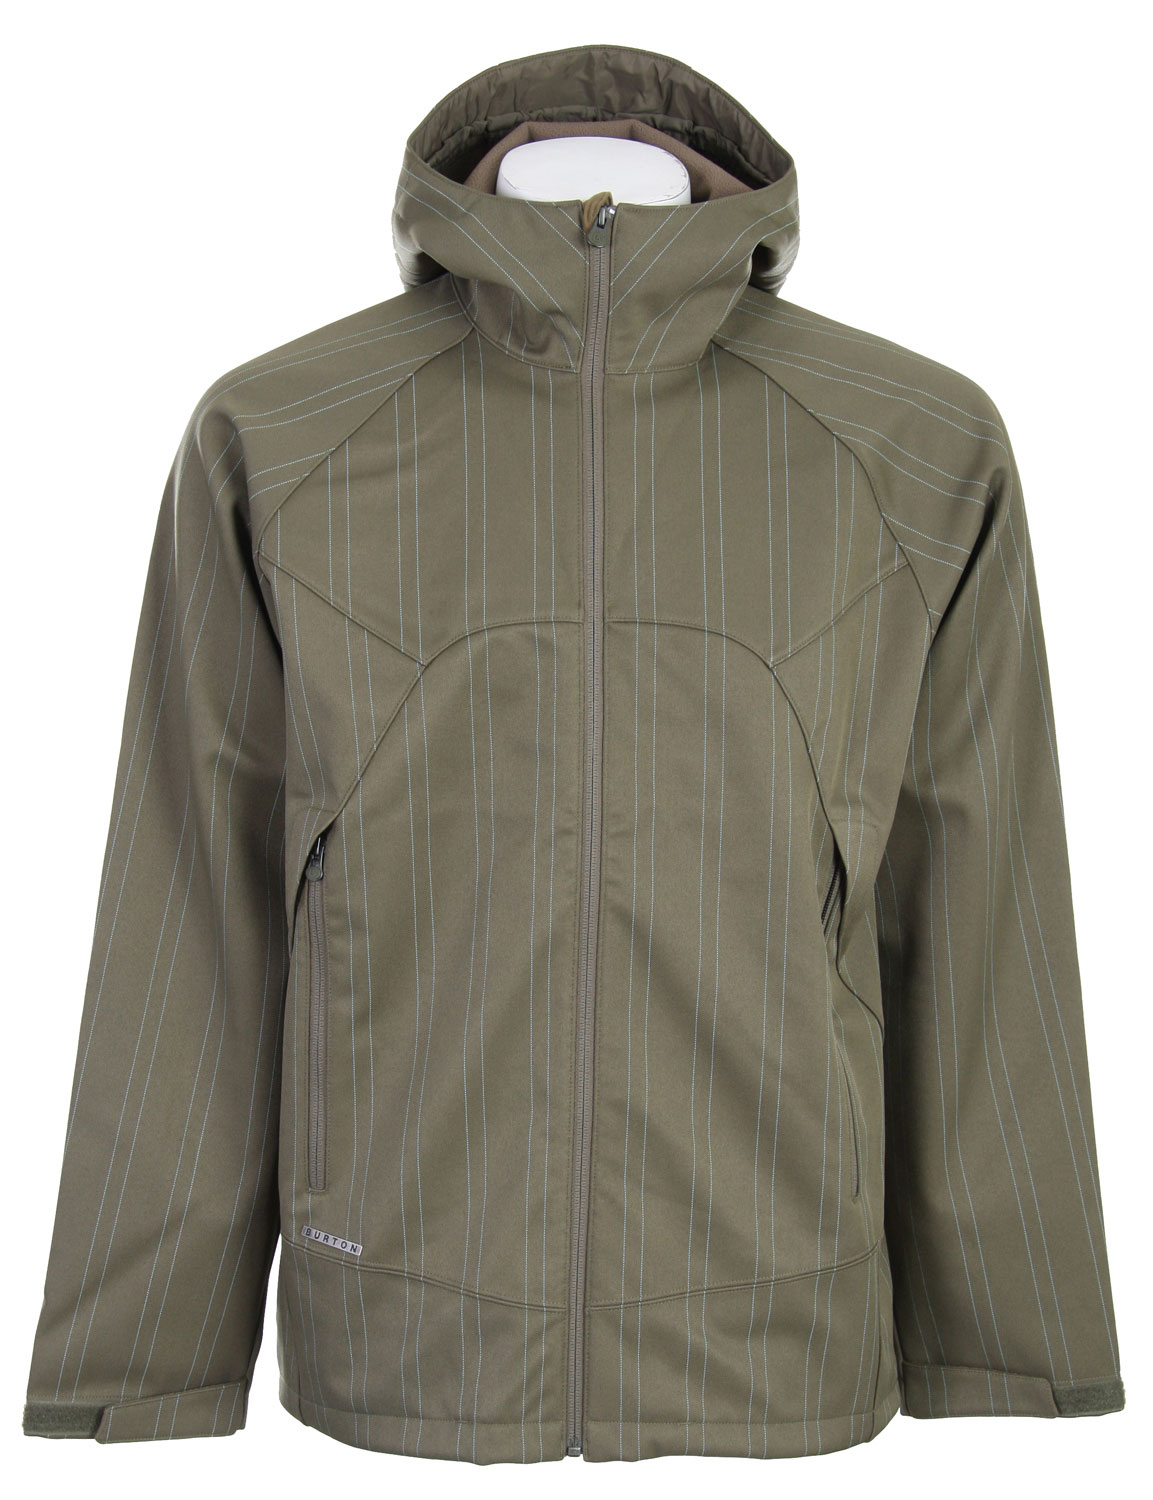 Camp and Hike Historically speaking, being soft has meant being weak or sissy or whatever, but rest assured, there is nothing soft about the Burton Beacon Softshell Jacket. The warm, breathable, and quick-drying fleece lining is wrapped in a weatherproof dobby pinstriped DRYRIDE Softshell fabric, making it a highly functional and stylish jacket for everything from riding, to hiking, to cruising the streets. Oversized, ventilating handwarmer pockets keep the paws comfortable so they'll be ready for battle in the off chance someone says something about your Softshell Jacket being soft. Key Features of The Burton Beacon Softshell Jacket: 10,000mm Waterproof Fleece Lining DRYRIDE Dobby Pinstripe Stretch Softshell Fabric [10,000MM Waterproofing] Fulltime Hood Oversized Handwarmer Pockets with Mesh Venting Super Soft Interior Collar and Zipper Guard at Chin - $107.95